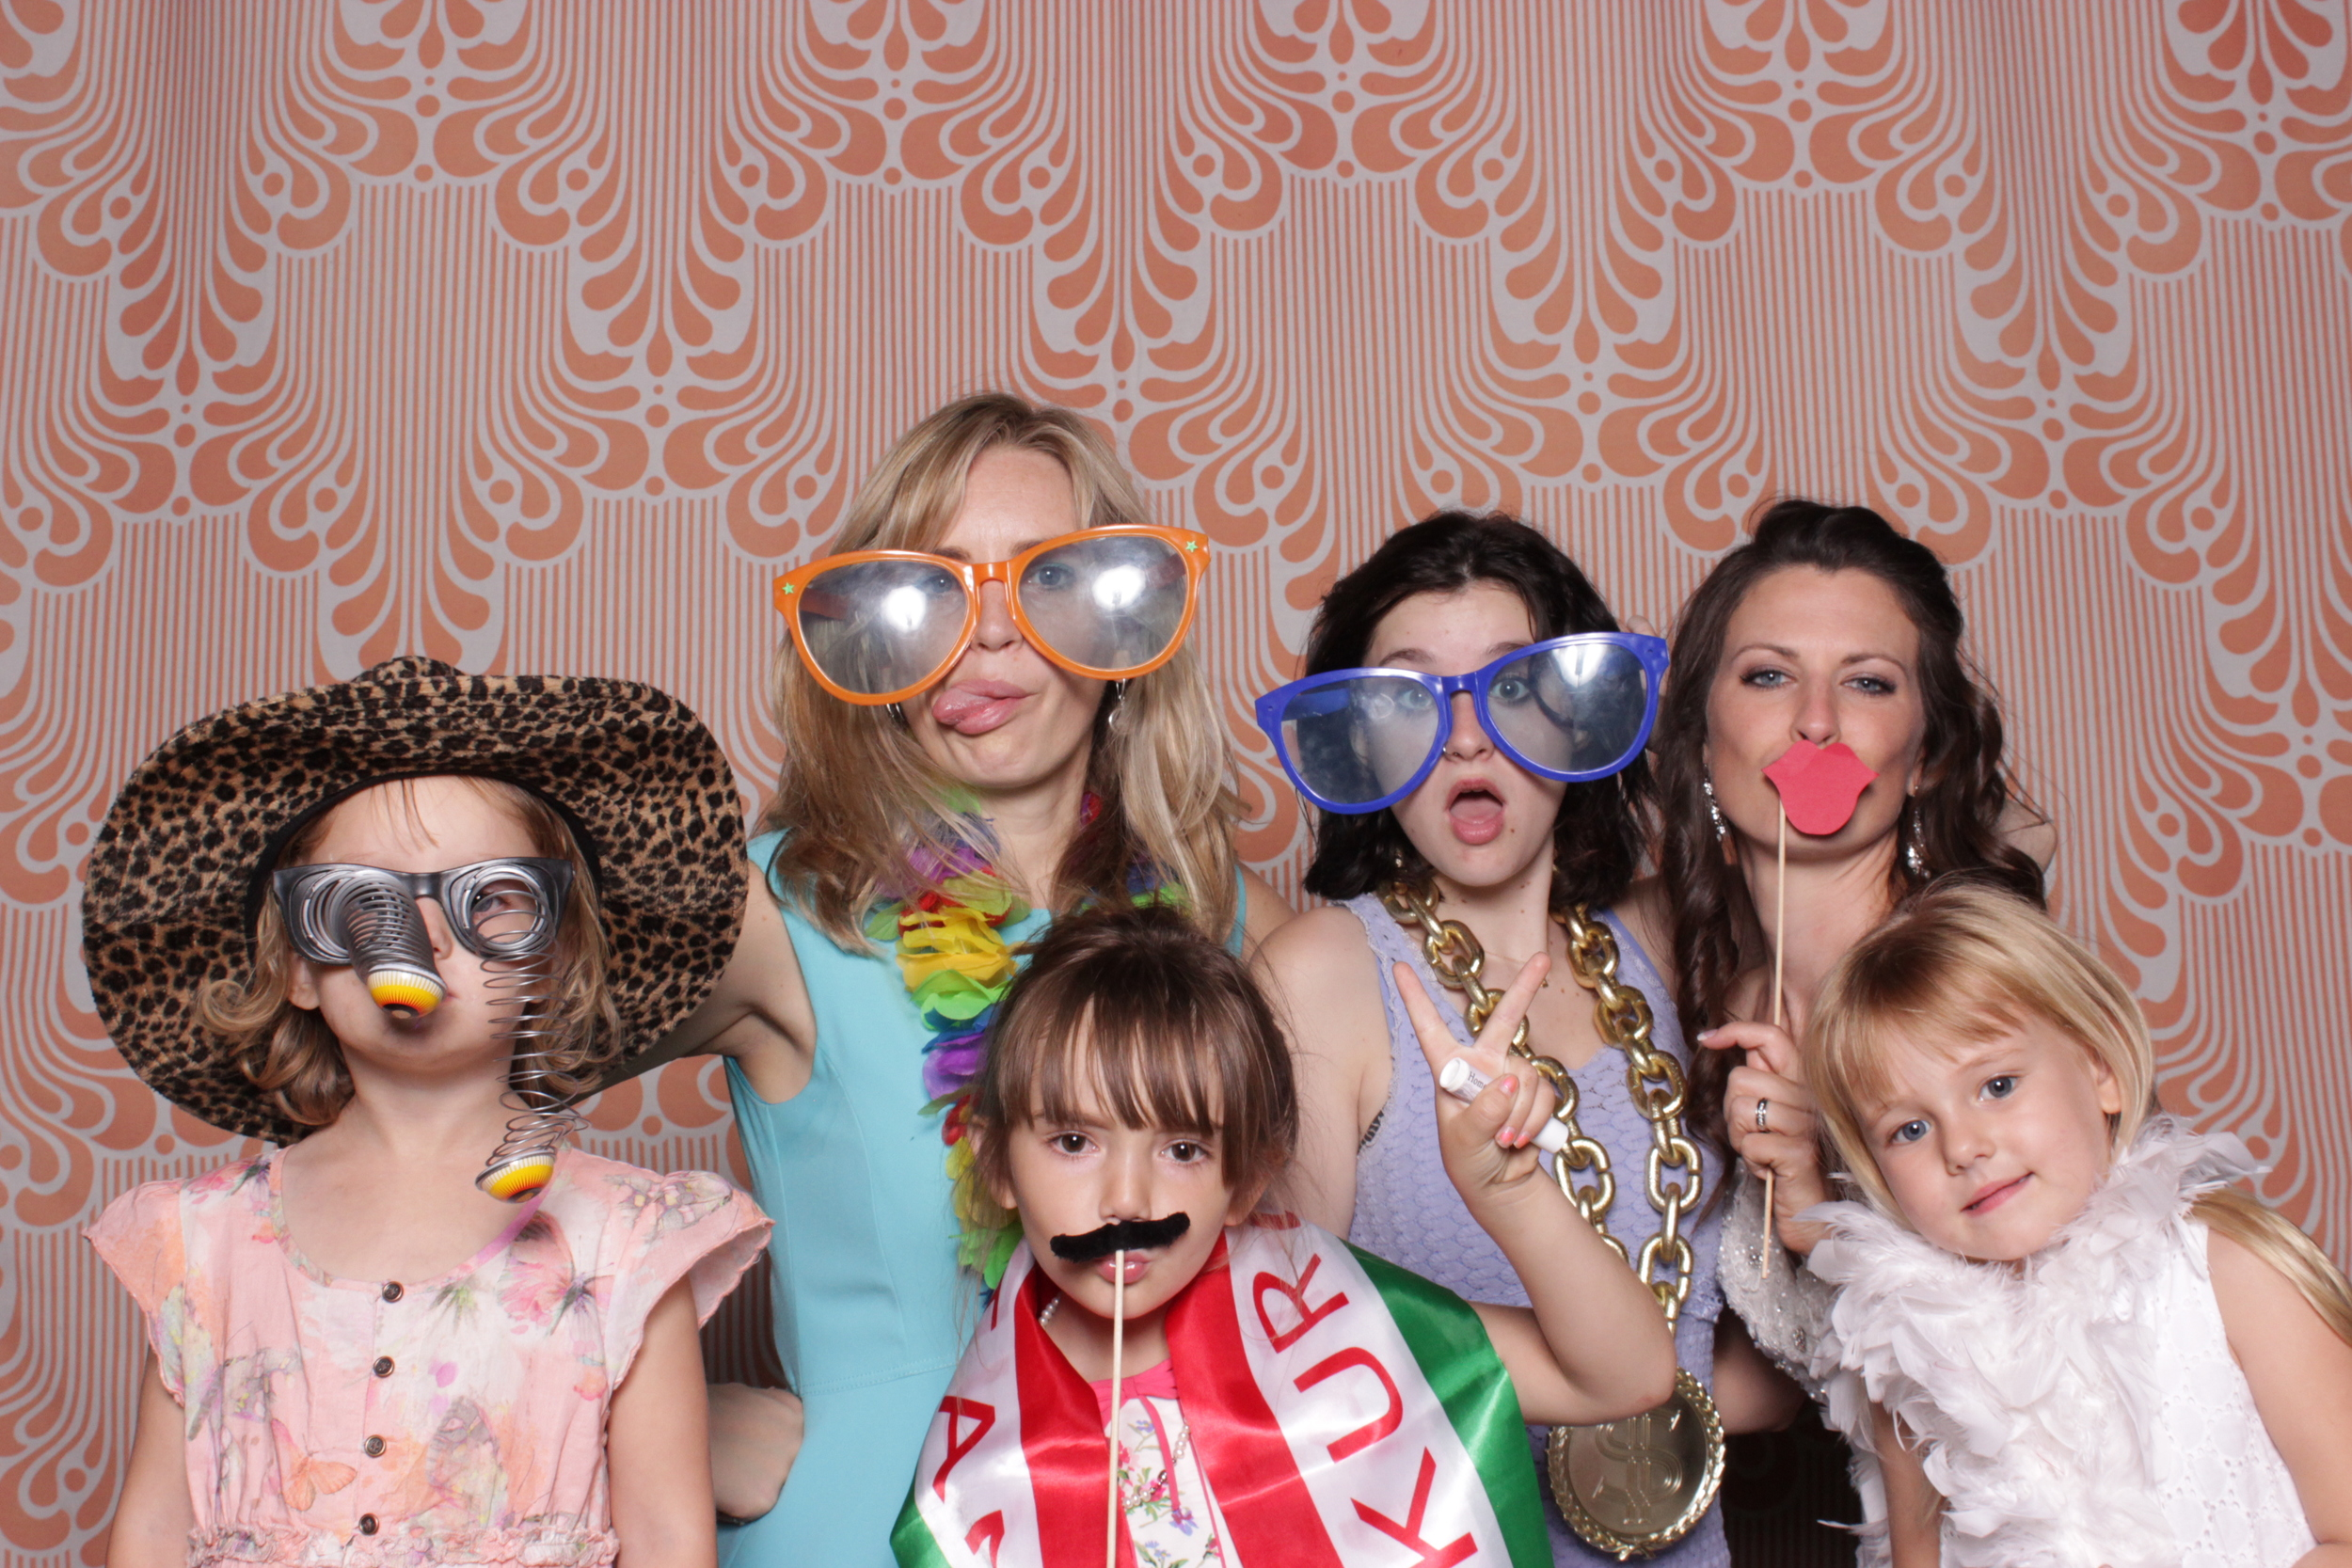 chico-photo-booth-rental-reception-guest-activities-rental-props